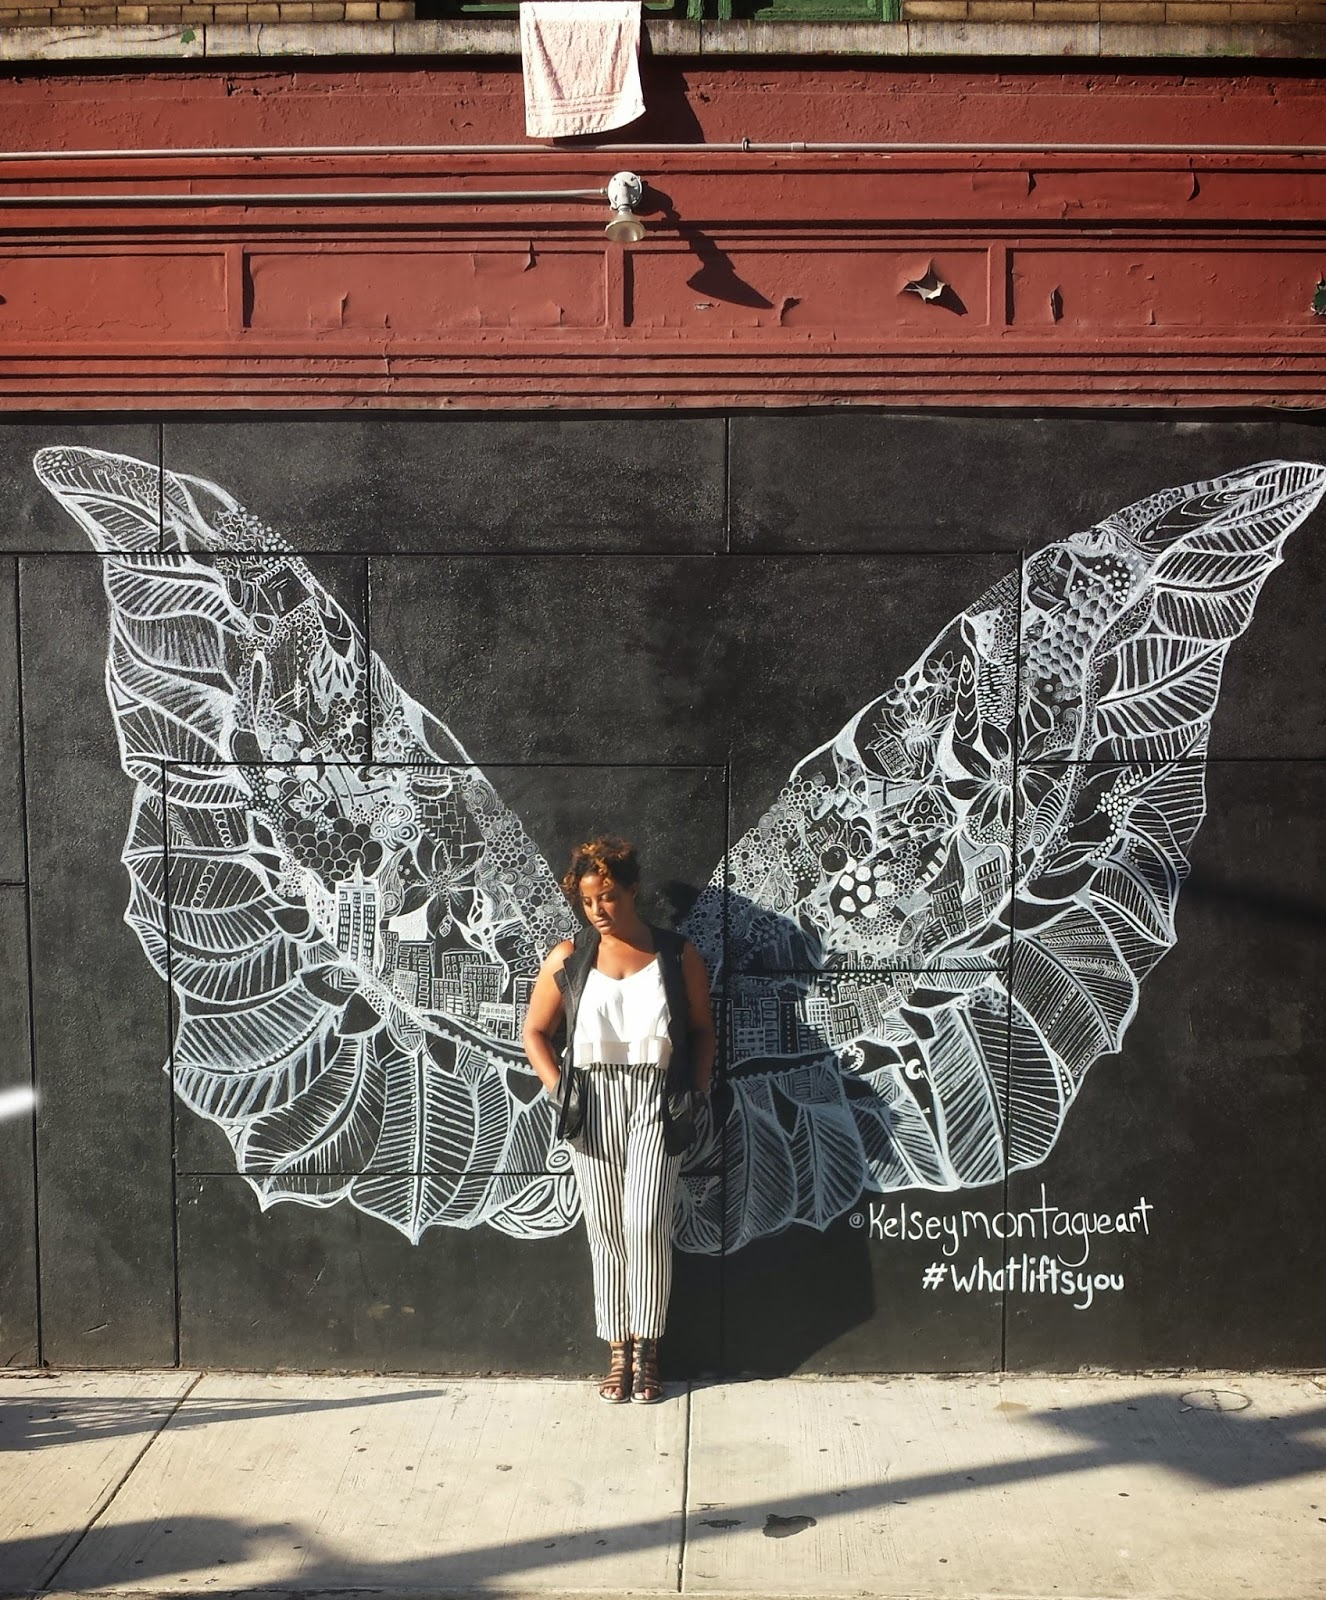 Edie's Closet - Kelsey Montague Art, Wings